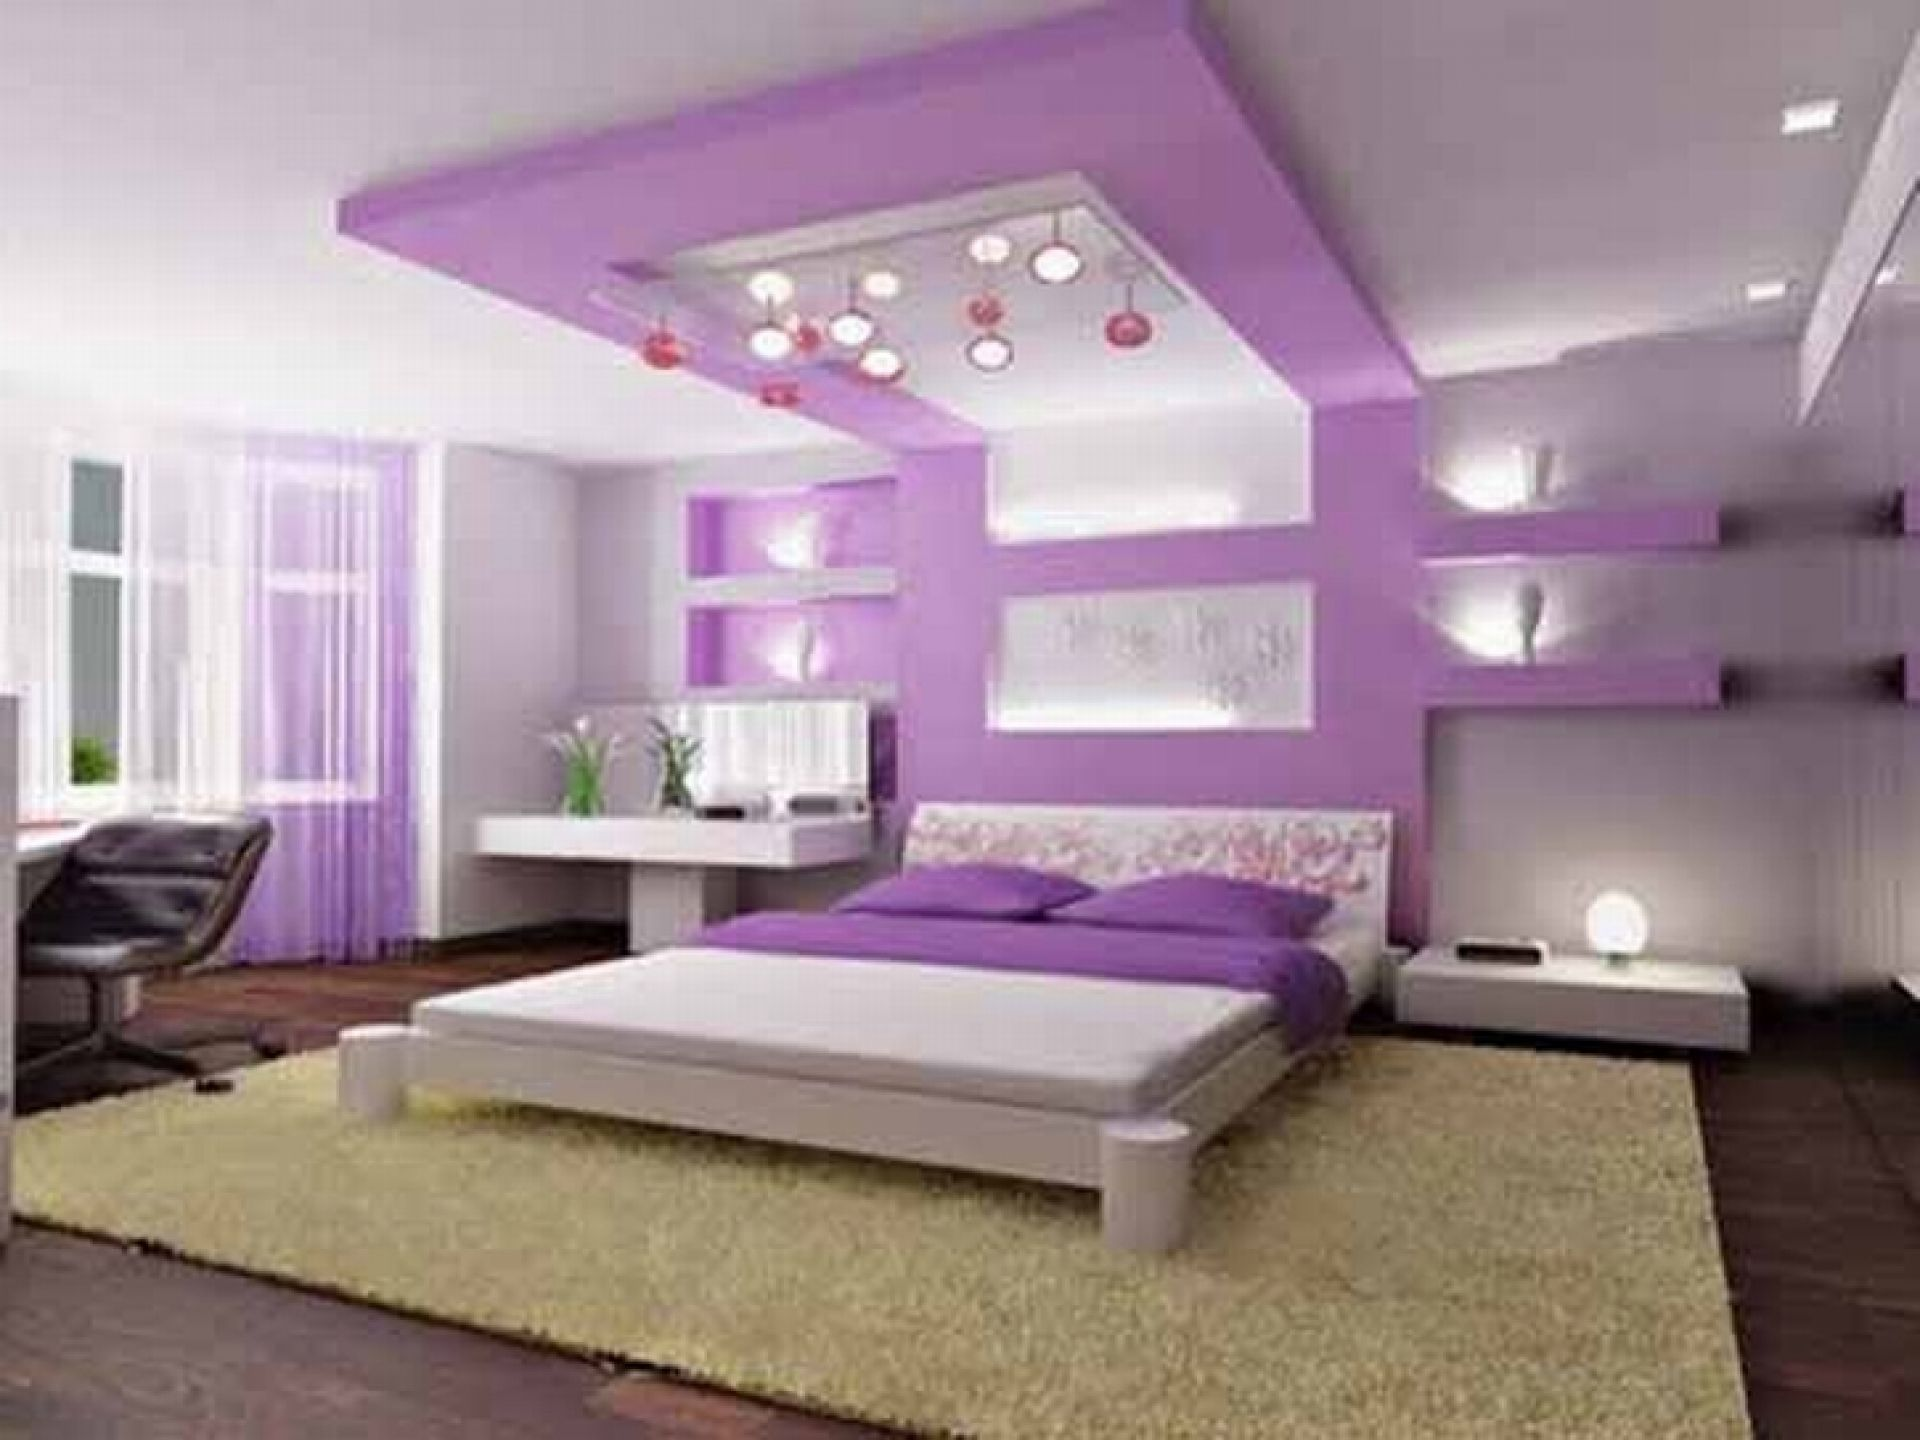 Undeniable Low Profile Bed Design with Decorative Built in Shelf and Ceiling Decoration